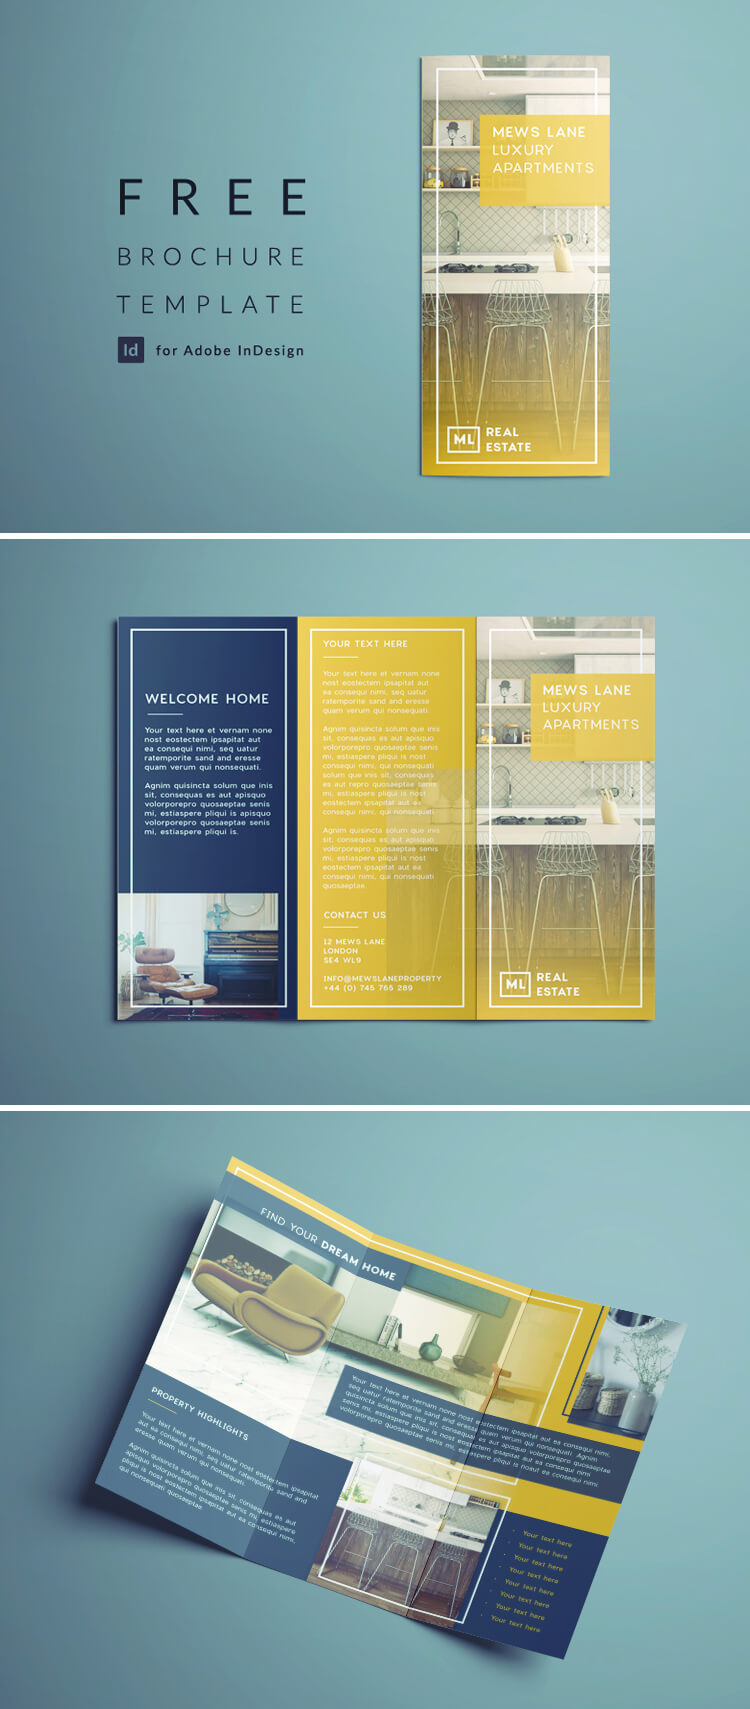 Tri fold brochure free indesign template for Indesign templates brochure